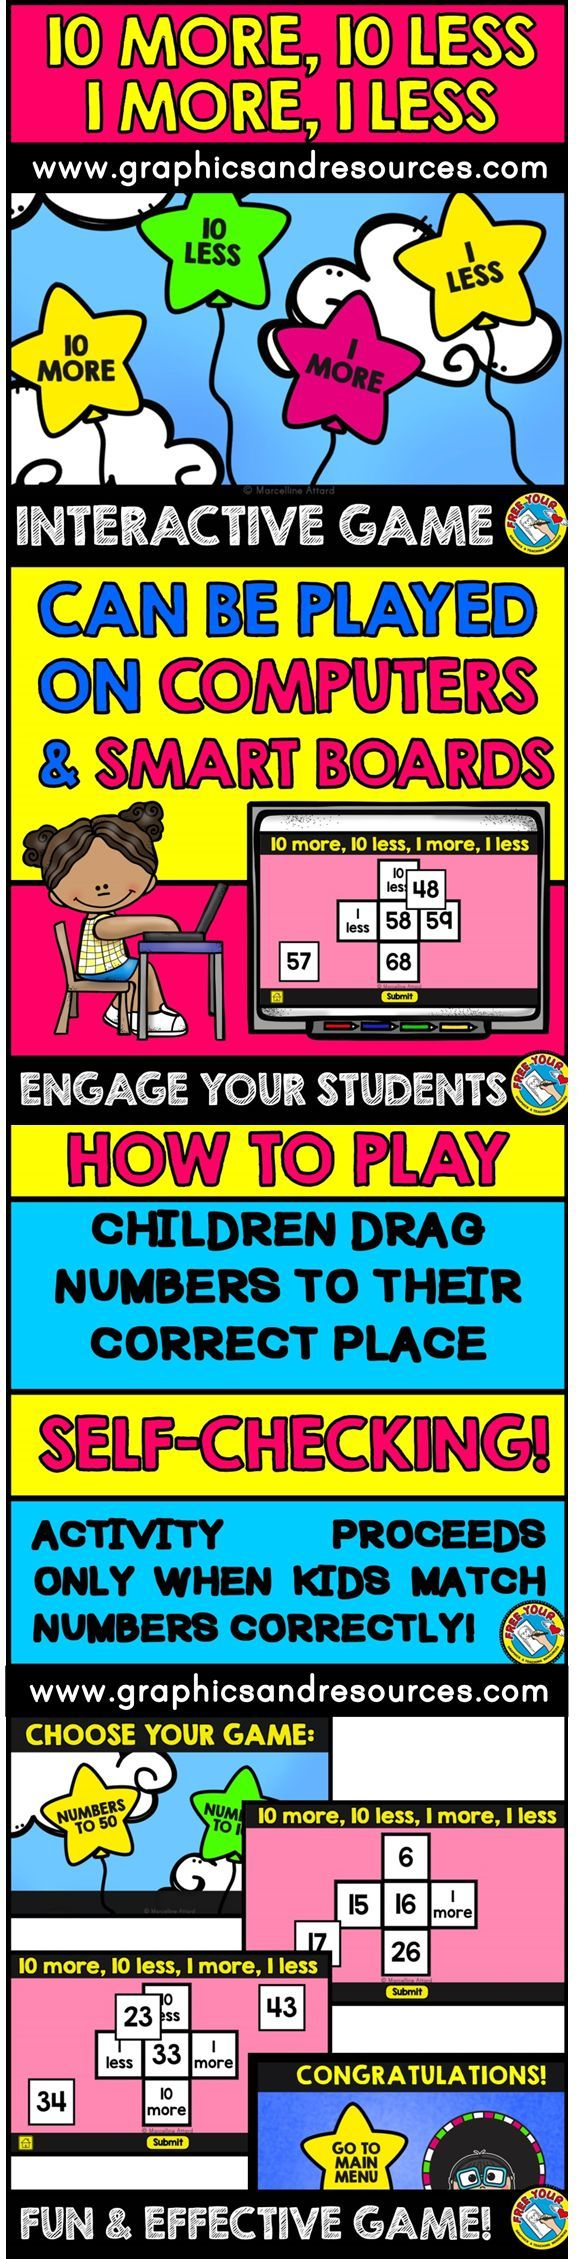 A fun, digital interactive game for children to practice 10 more, 10 less, 1 more and 1 less. This game is designed to be used on a computer or interactive whiteboard. After kids drag the 4 numbers onto the correct box, they click on 'Submit' button to check if they got the answers correct.